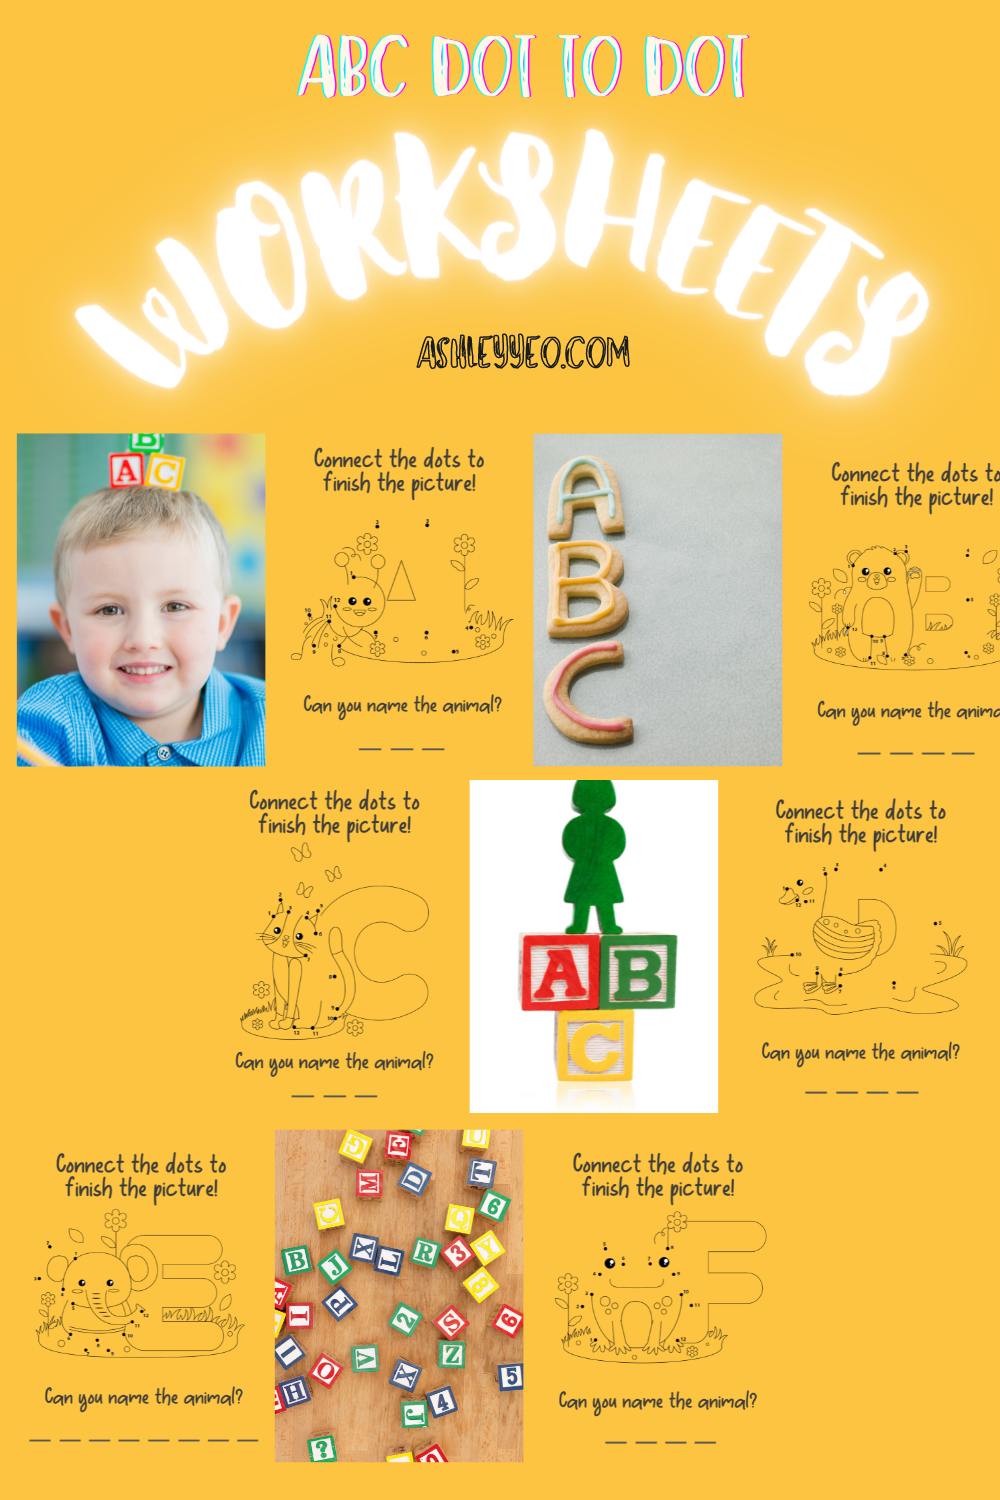 ABC Dot To Dot For Preschoolers